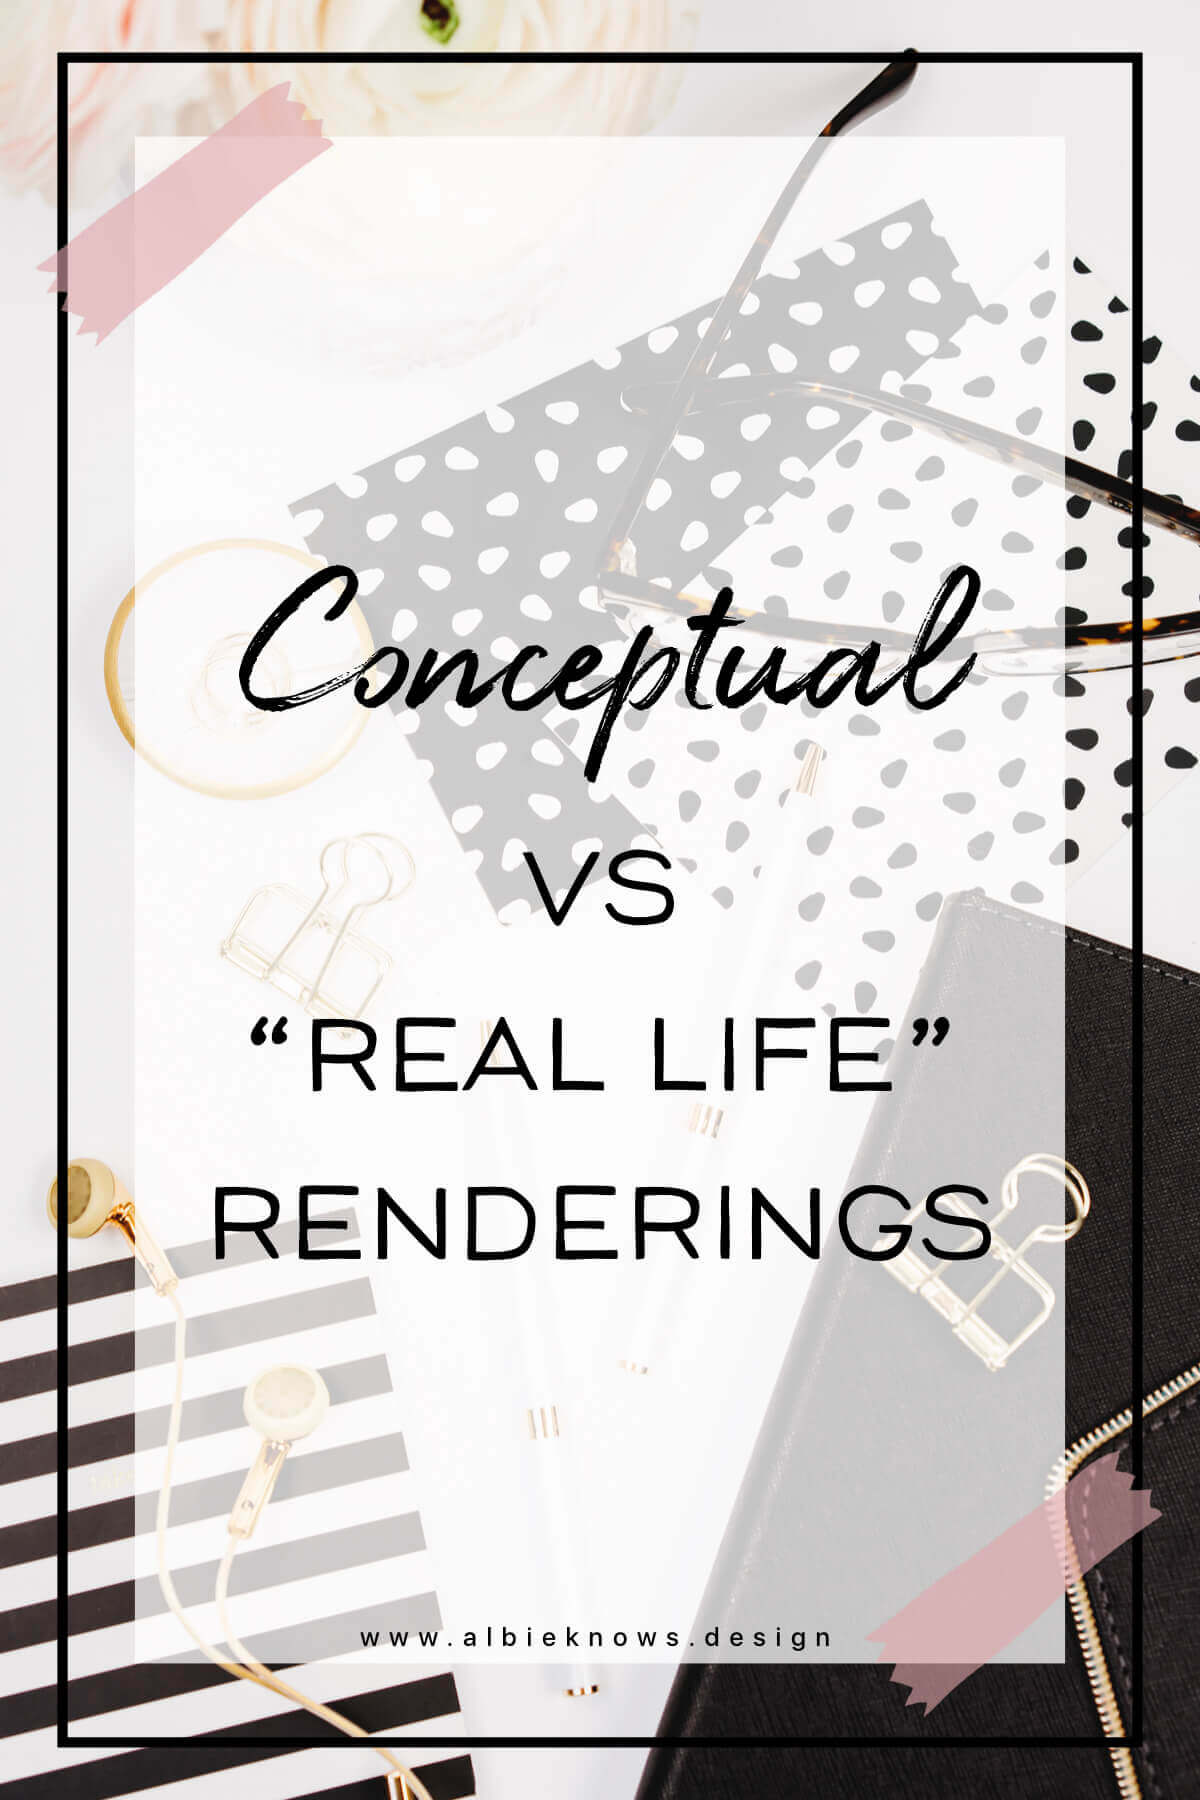 Albie Knows Conceptual vs Real Life Renderings